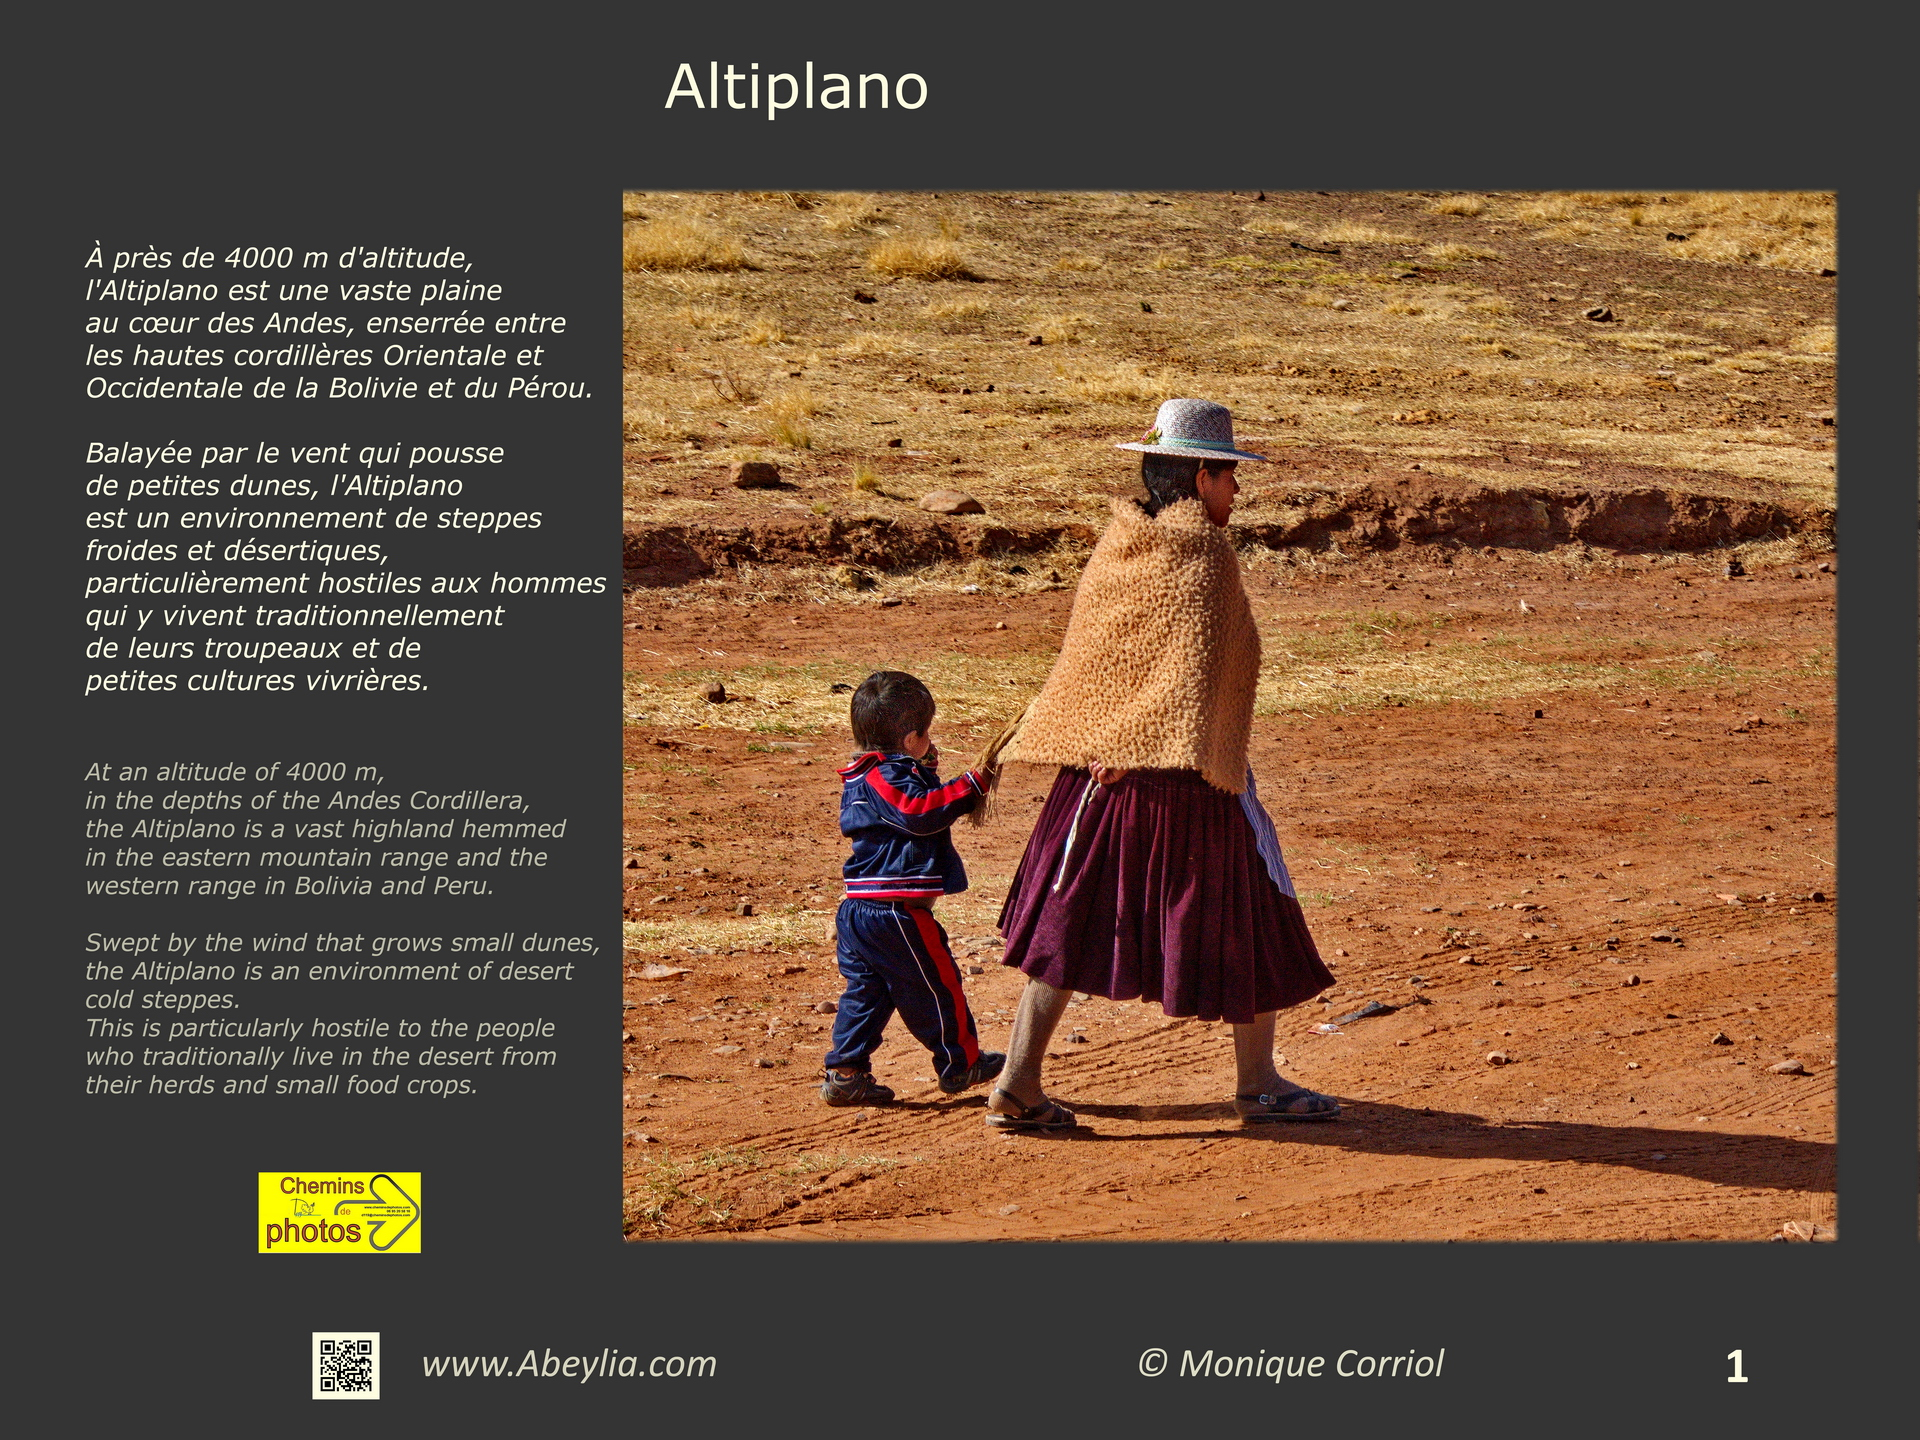 Altiplano - Monique Corriol à Alaigne